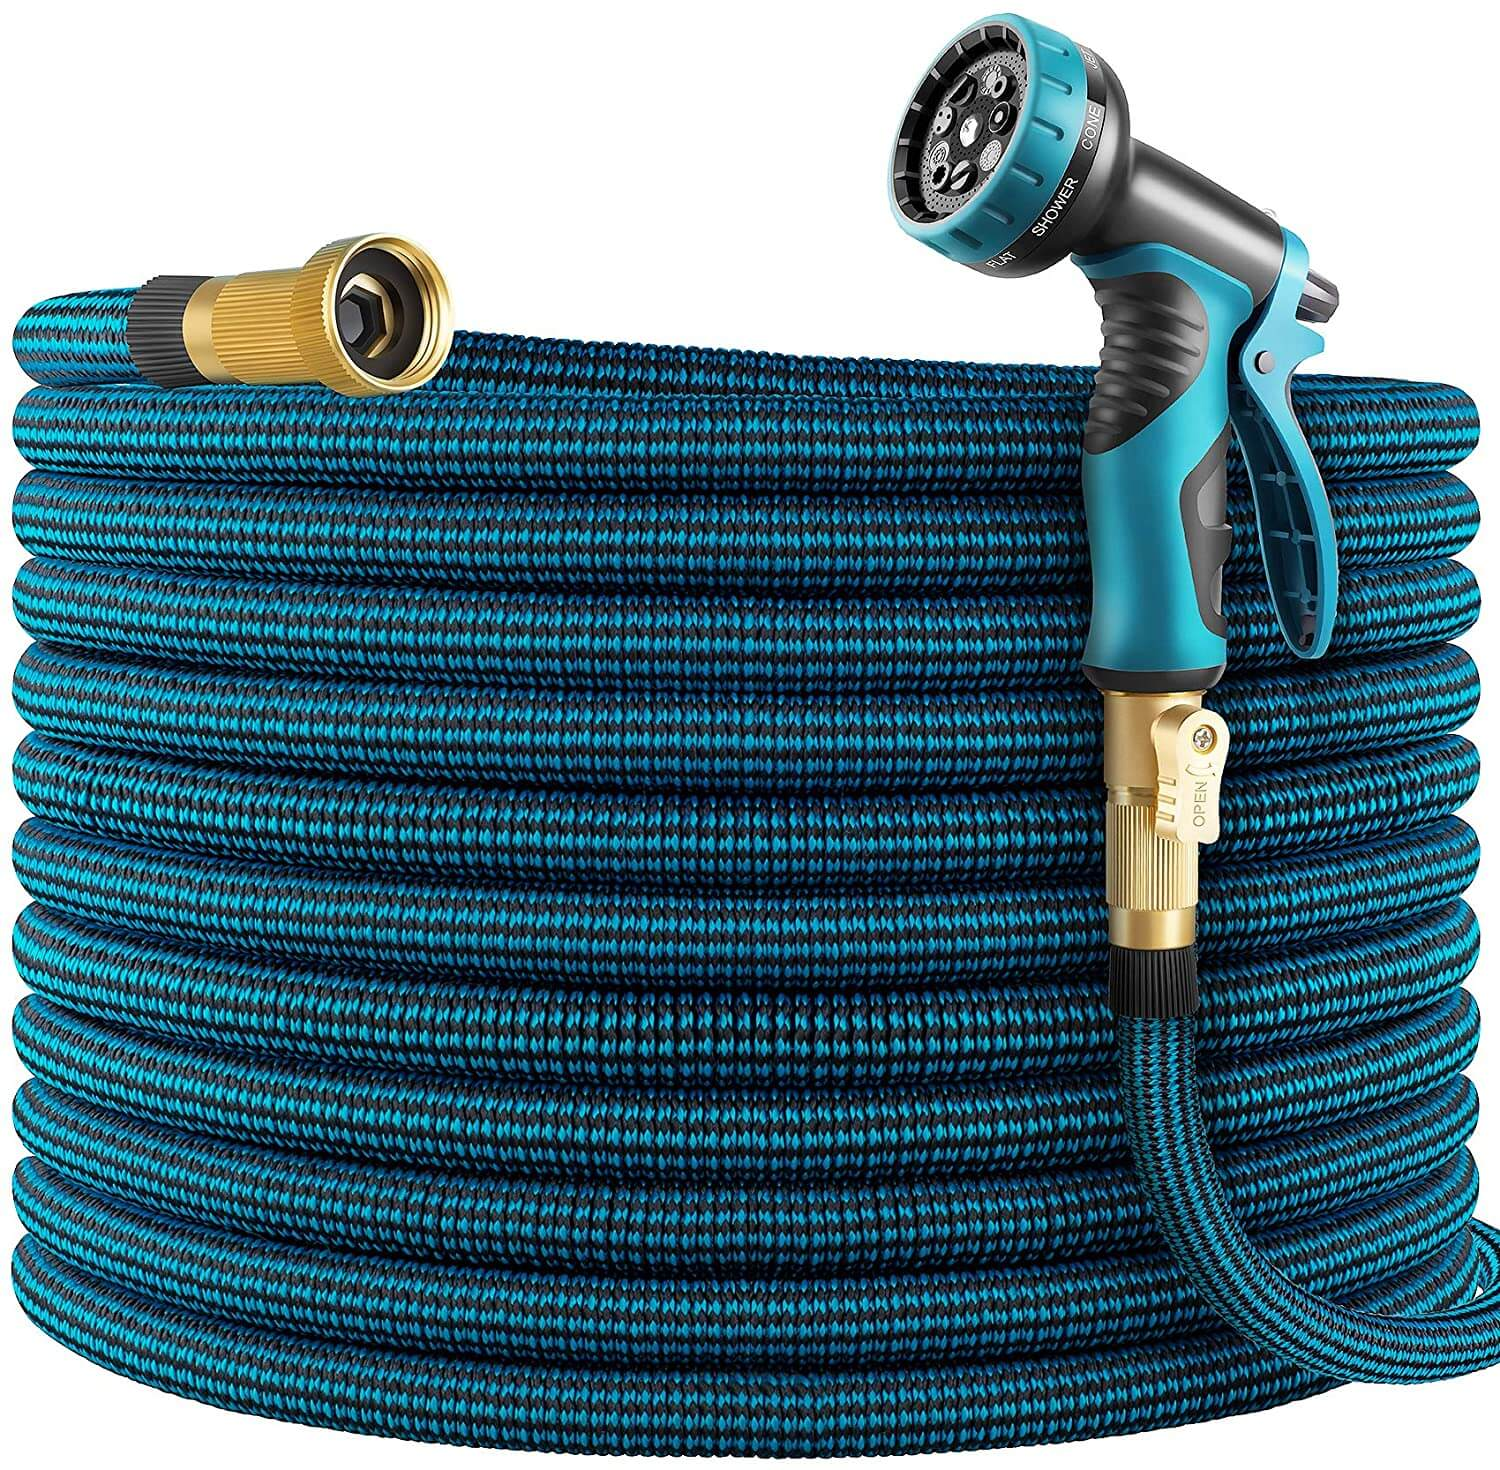 4. WHIMSWIT 100FT Garden Hose Expandable, with Solid Brass Connector